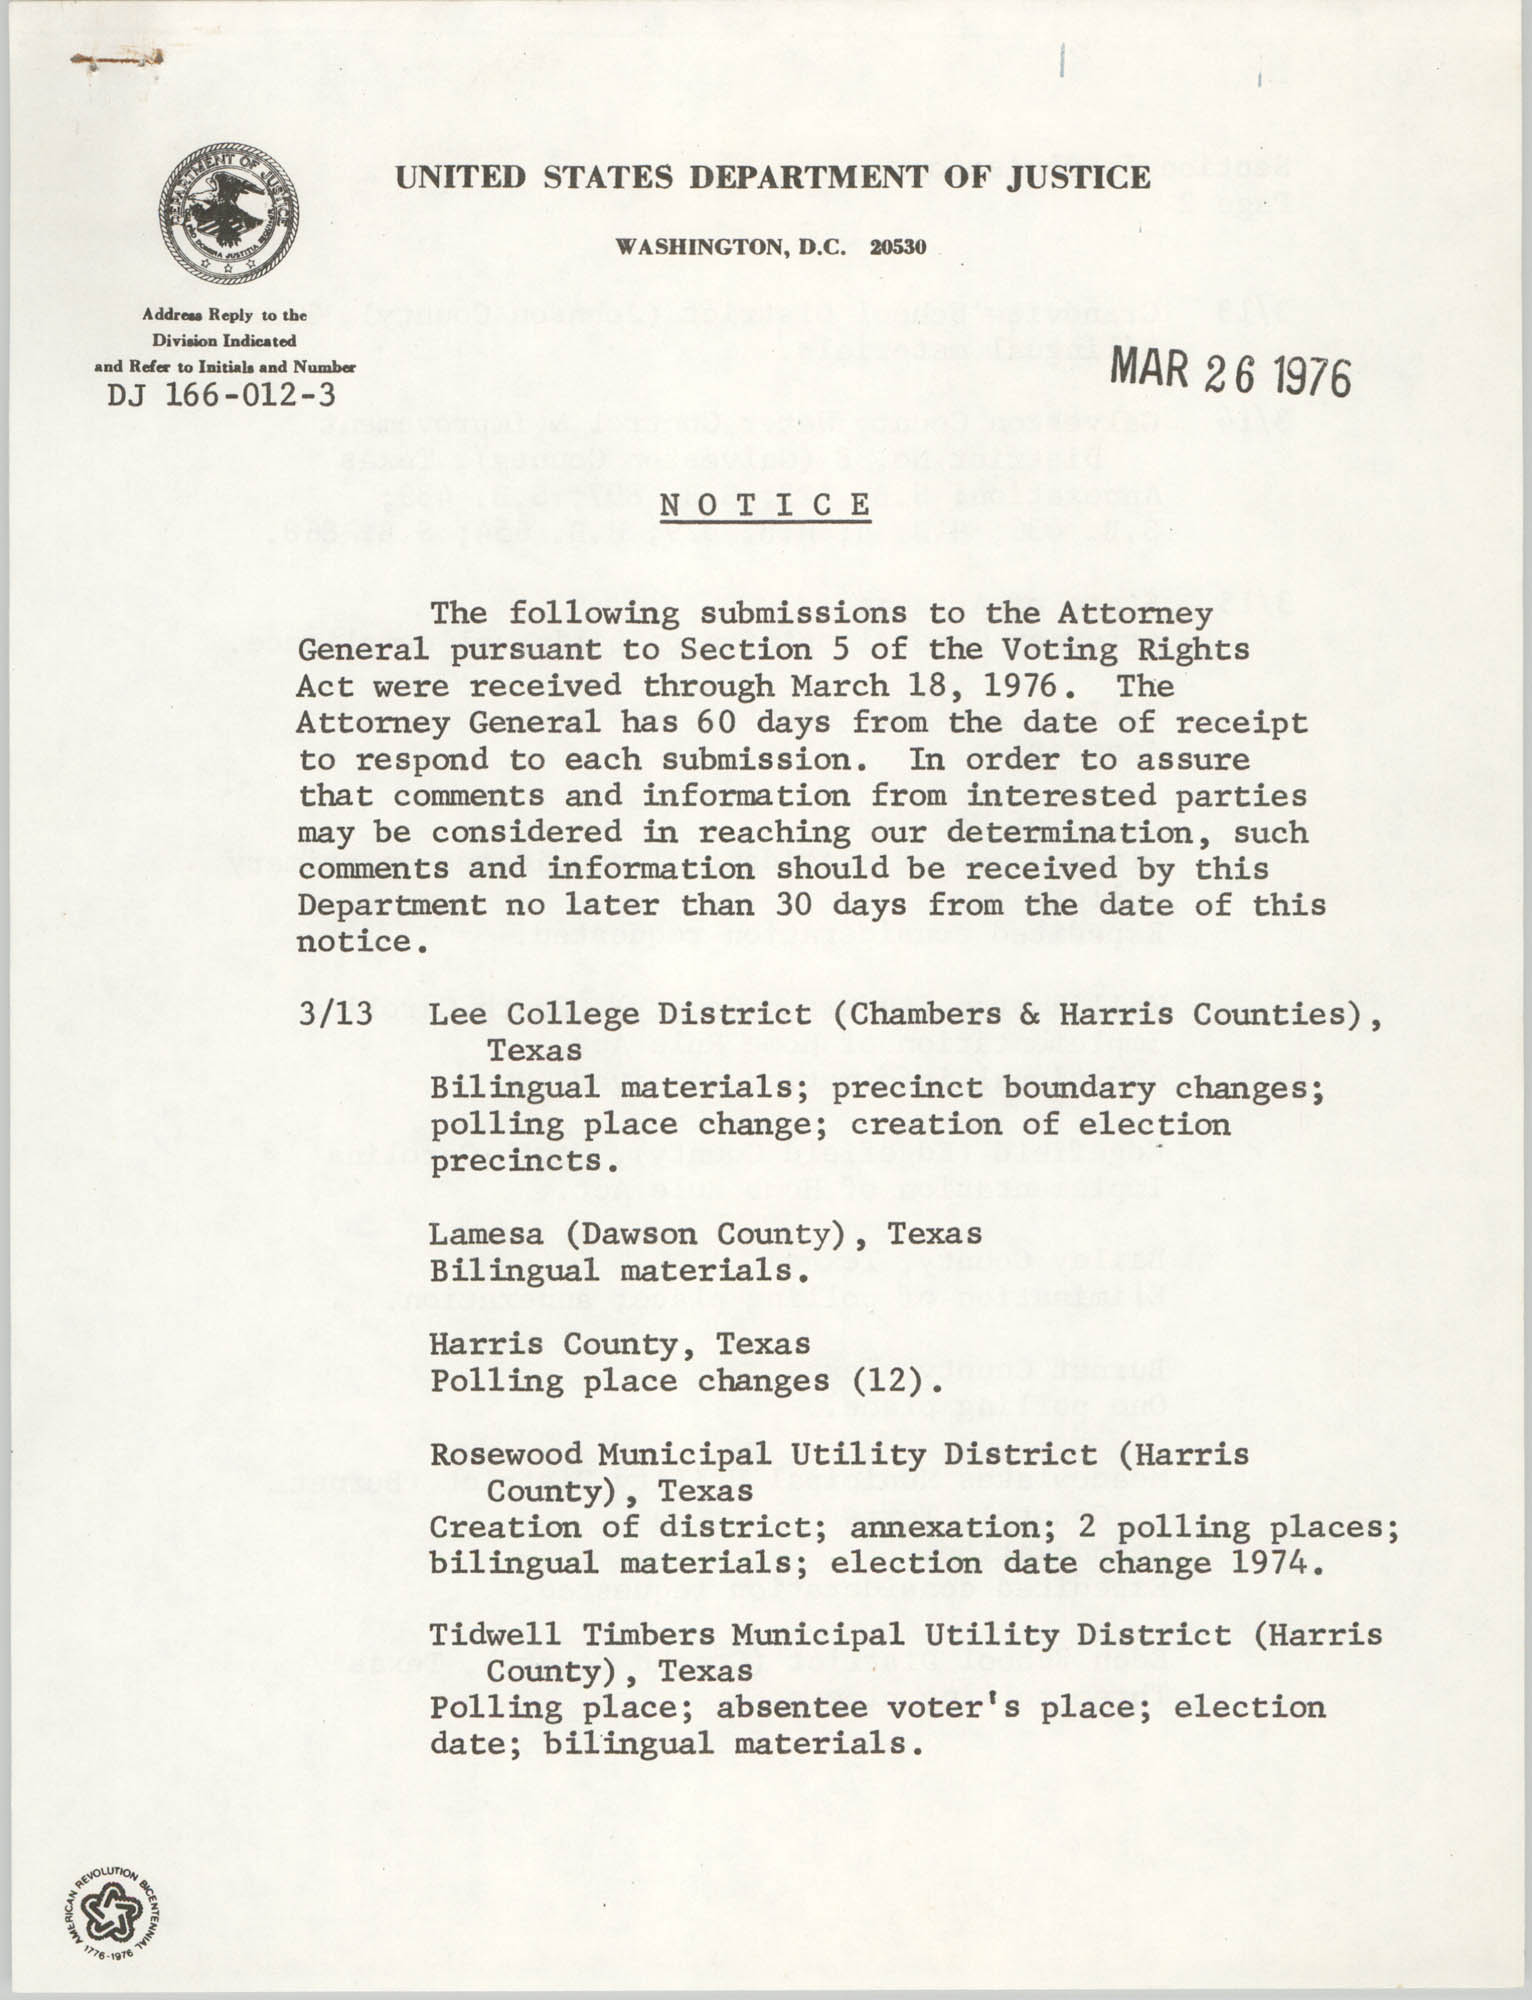 United States Department of Justice Notice, March 26, 1976, Page 1